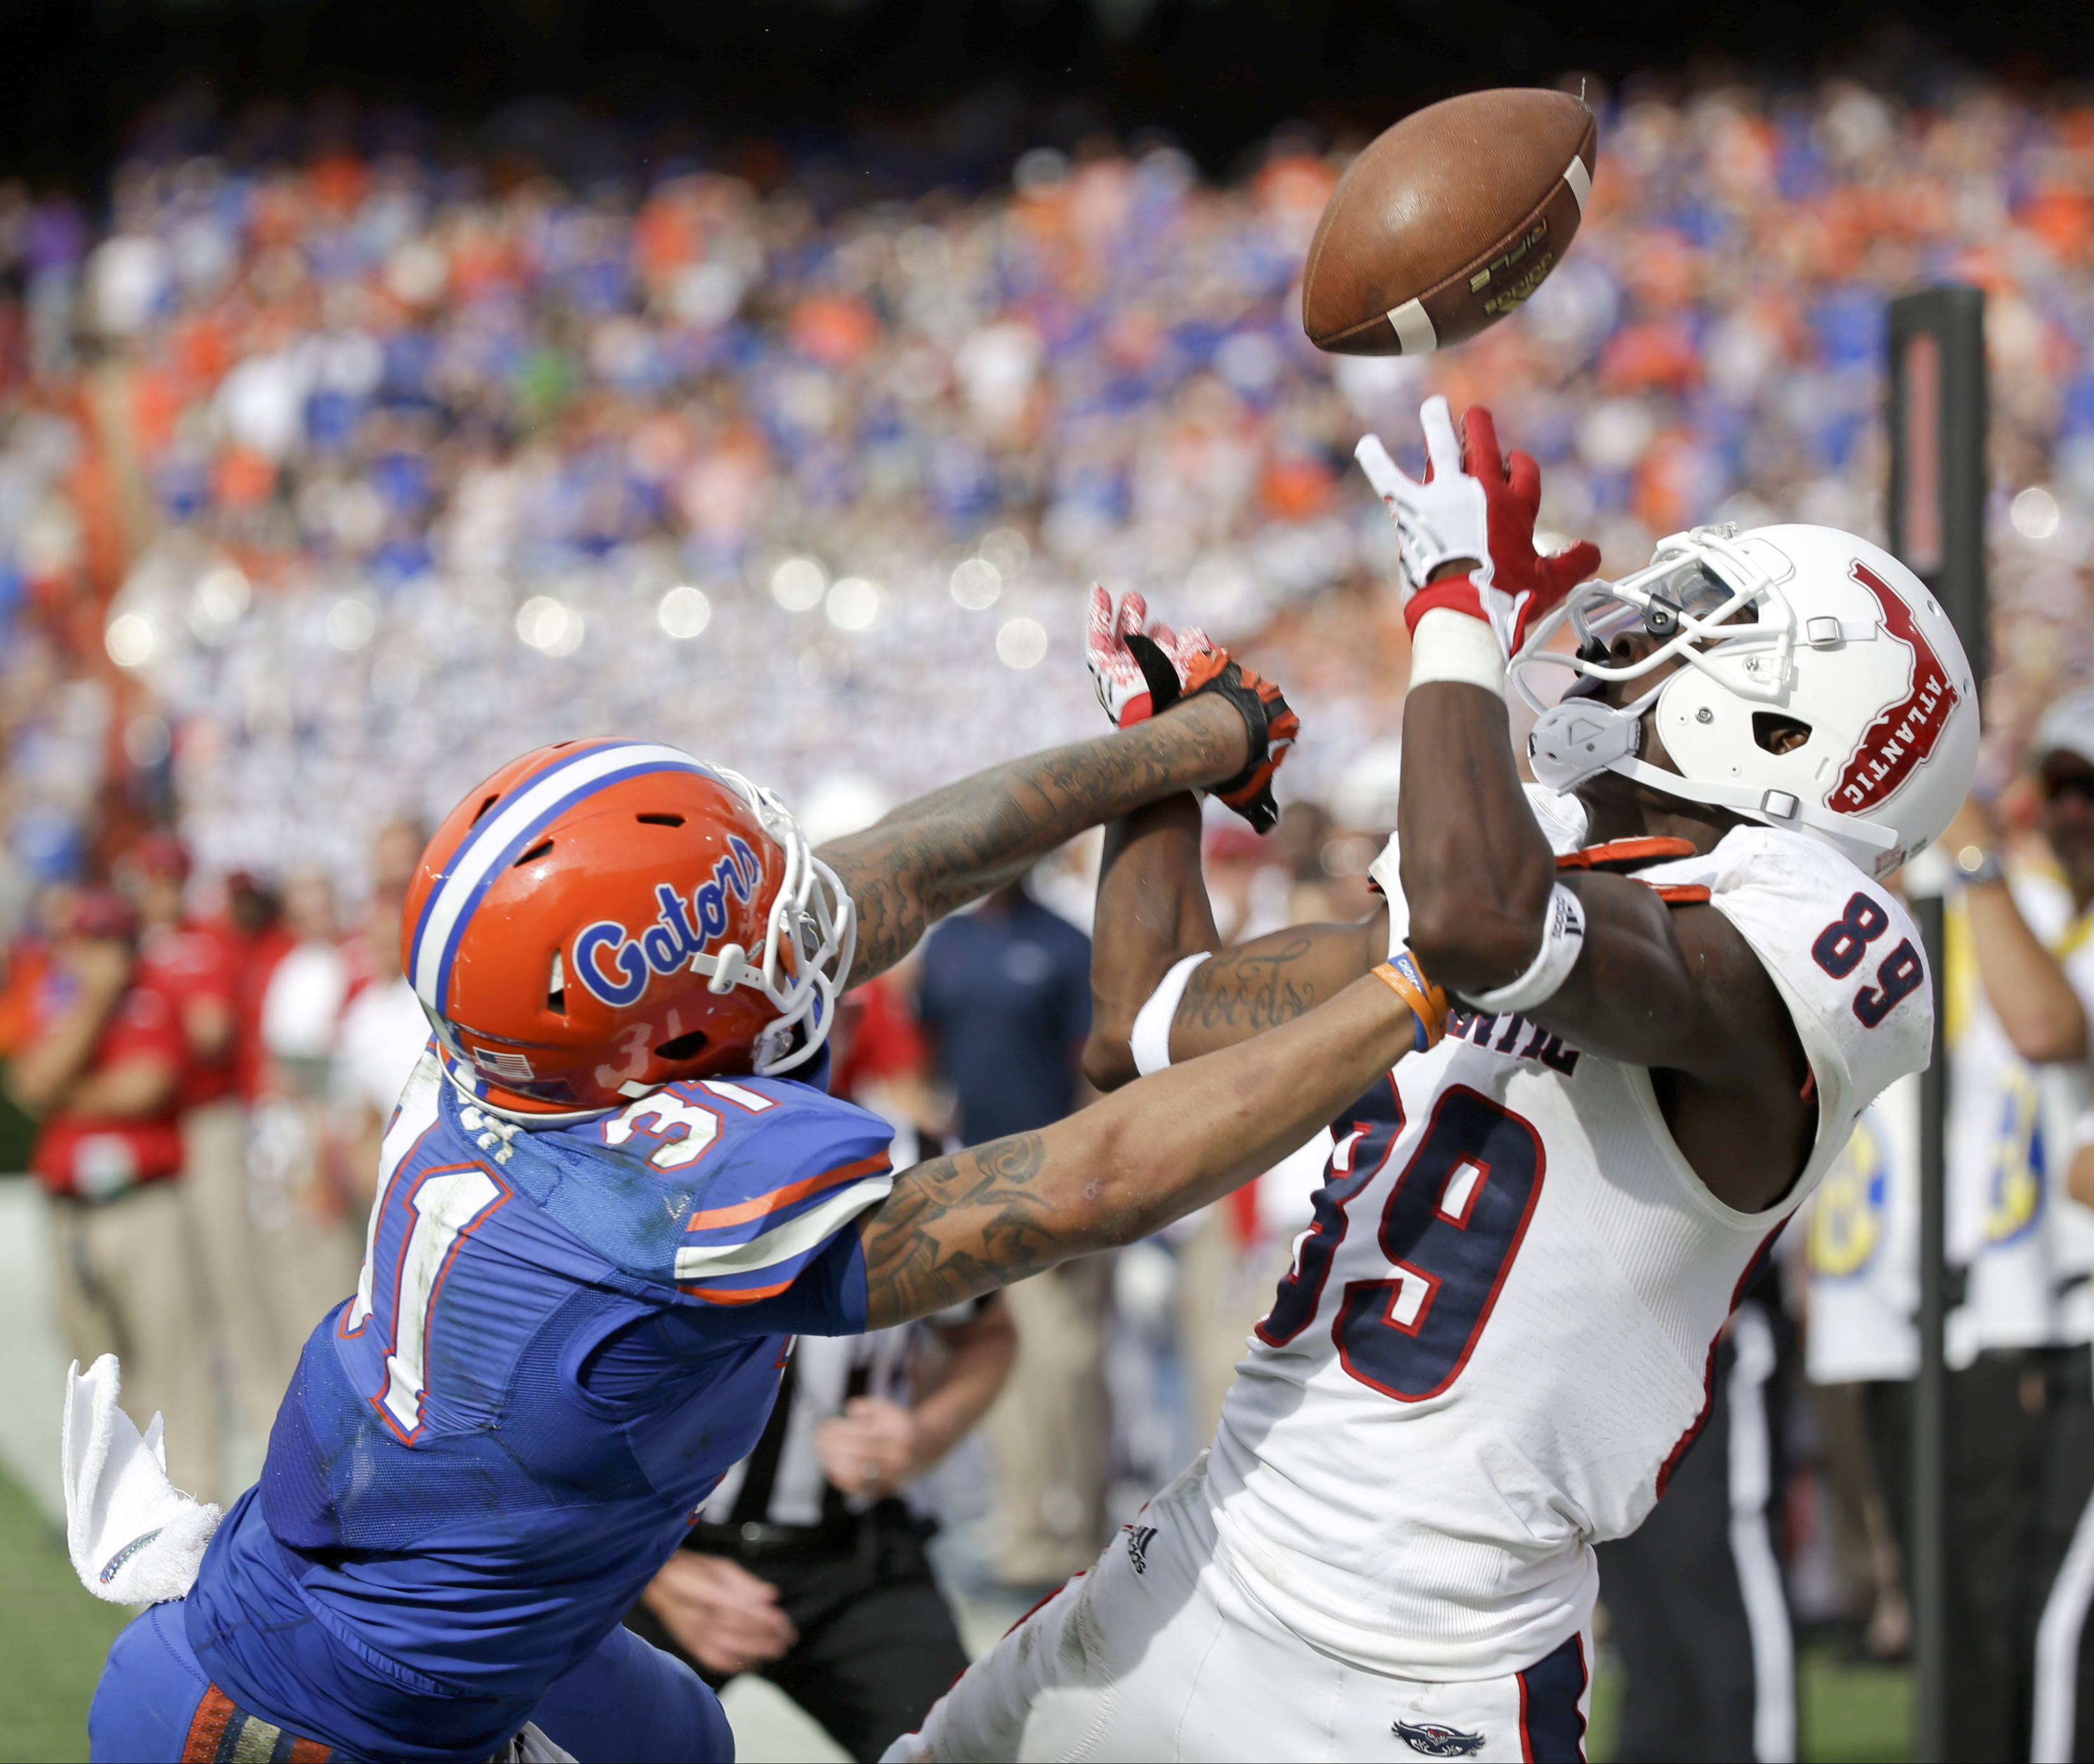 FILE - In this Nov. 21, 2015, file photo, Florida defensive back Jalen Tabor (31) breaks up a pass intended for Florida Atlantic wide receiver Darius James (89) during the second half of an NCAA college football game, in Gainesville, Fla. The Southeastern